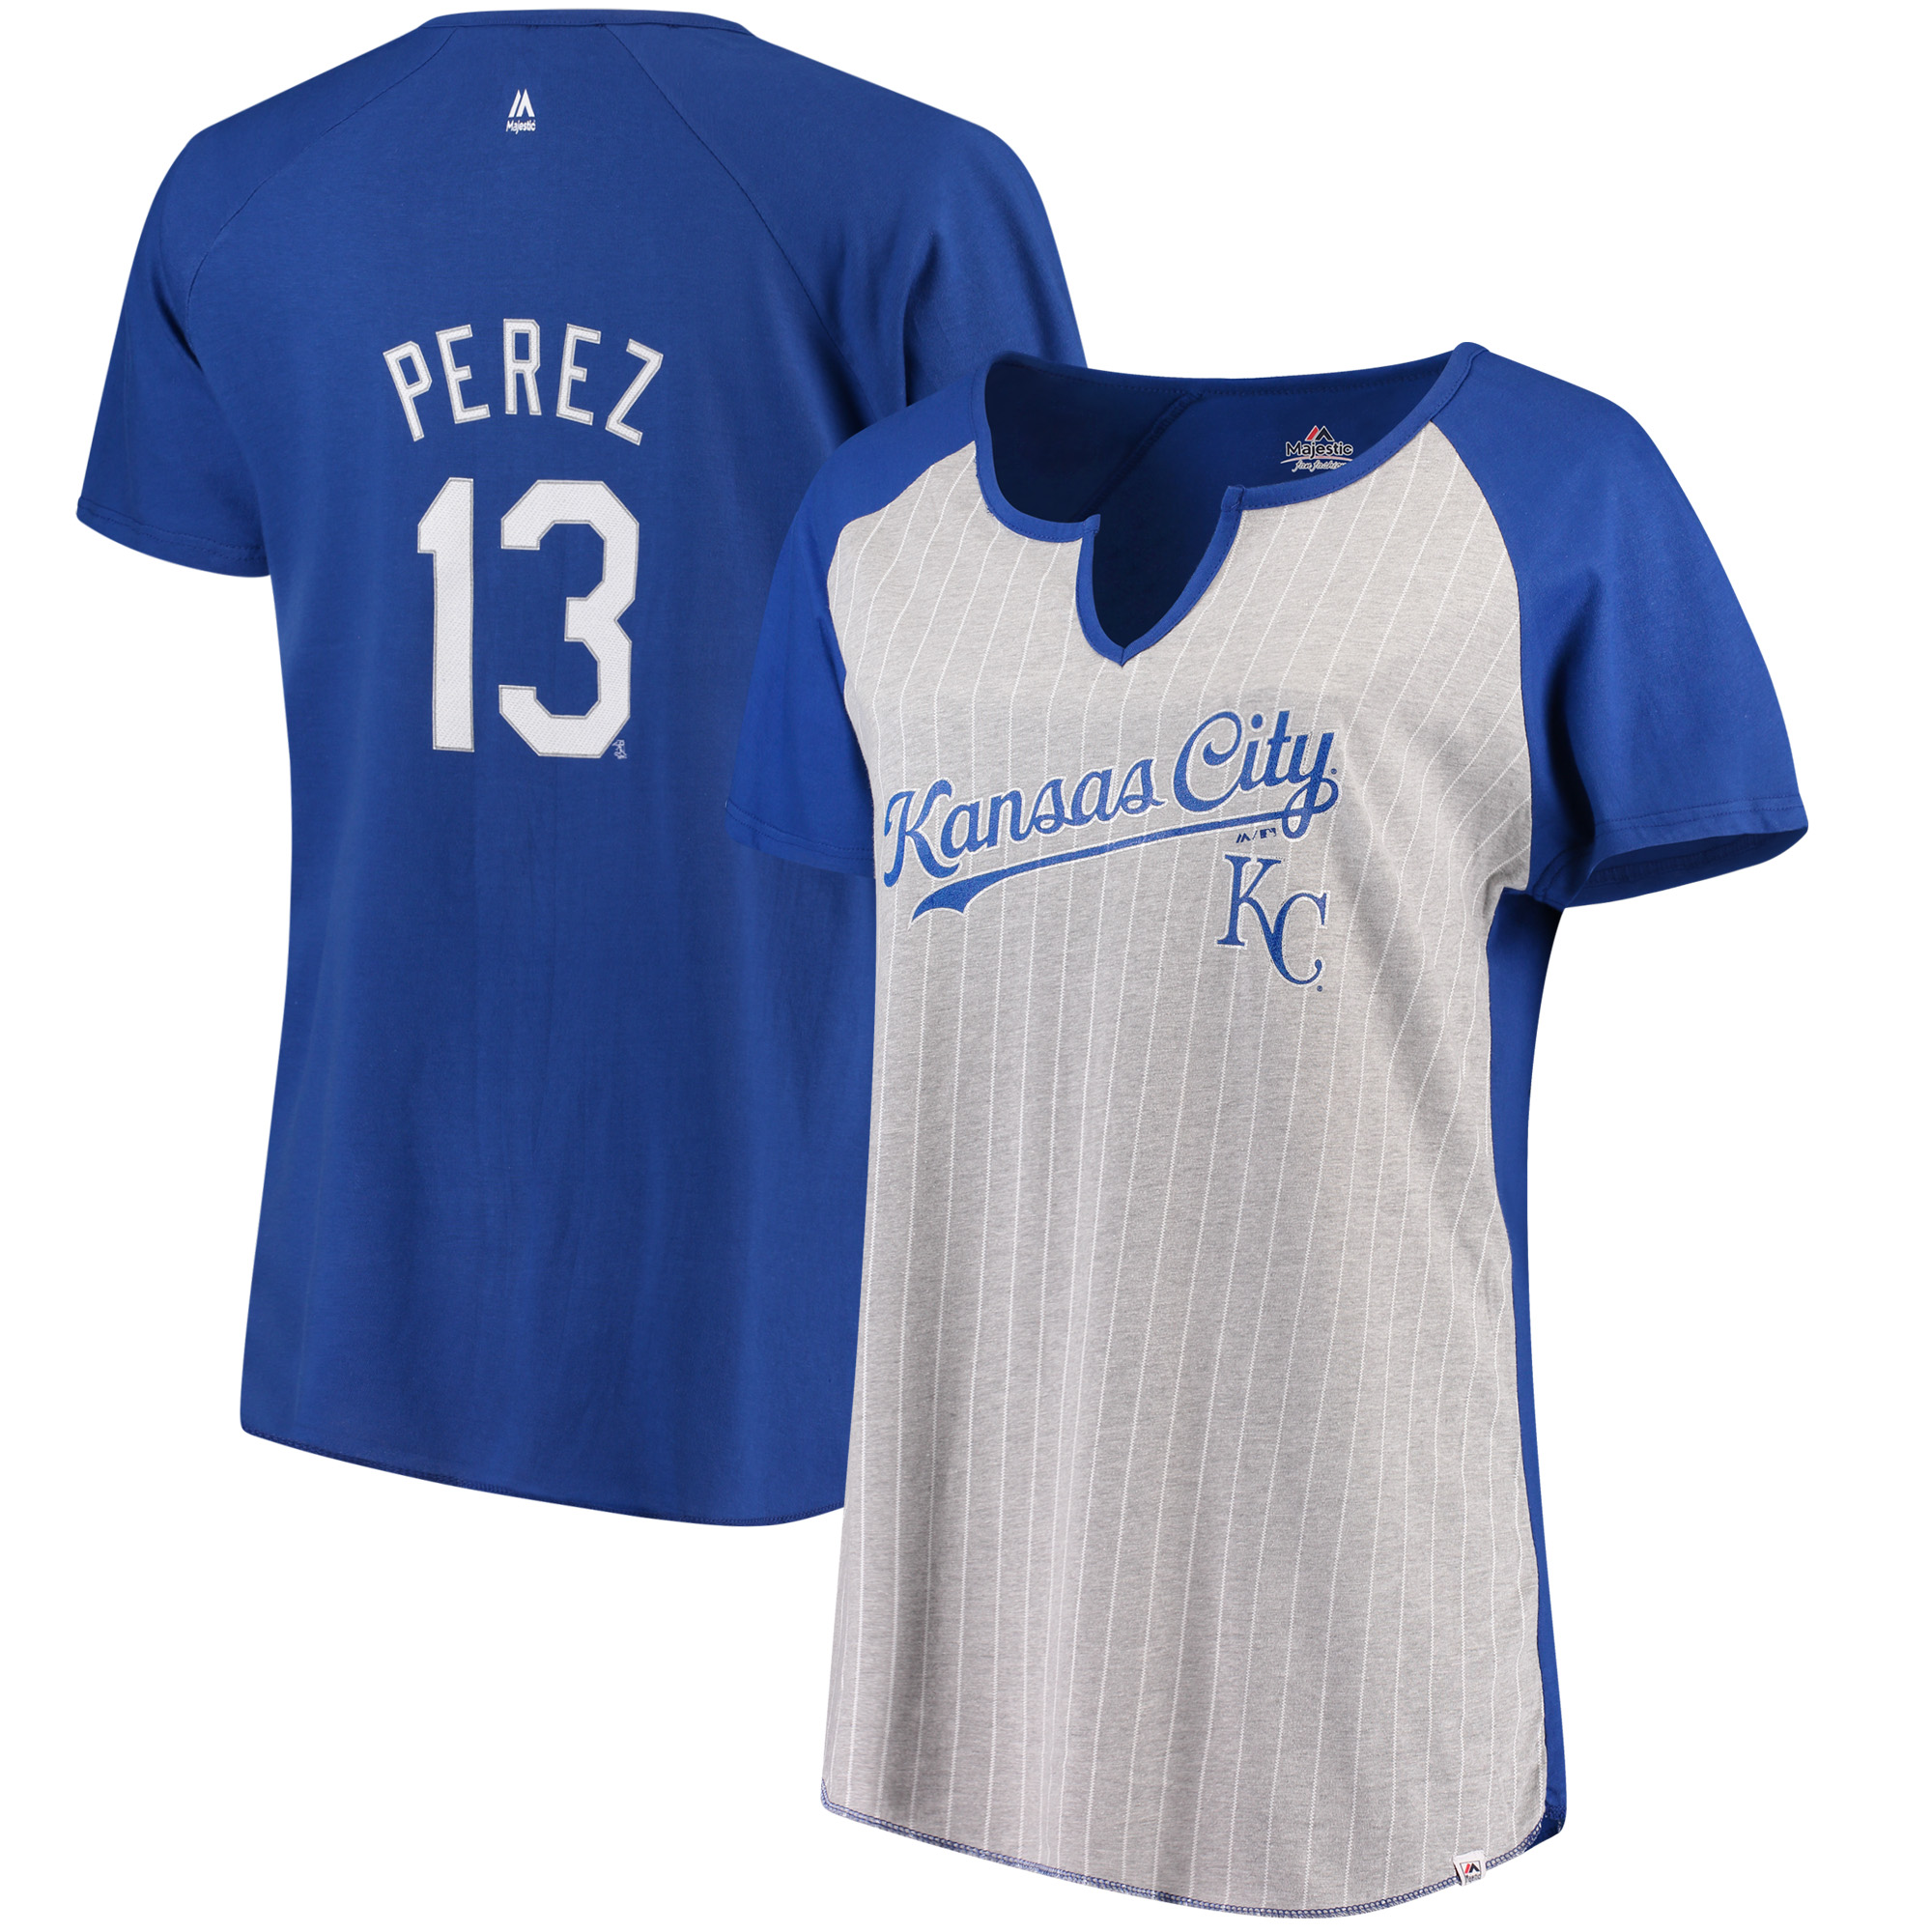 Salvador Perez Kansas City Royals Majestic Women's Plus Size Pinstripe Player T-Shirt - Gray/Royal